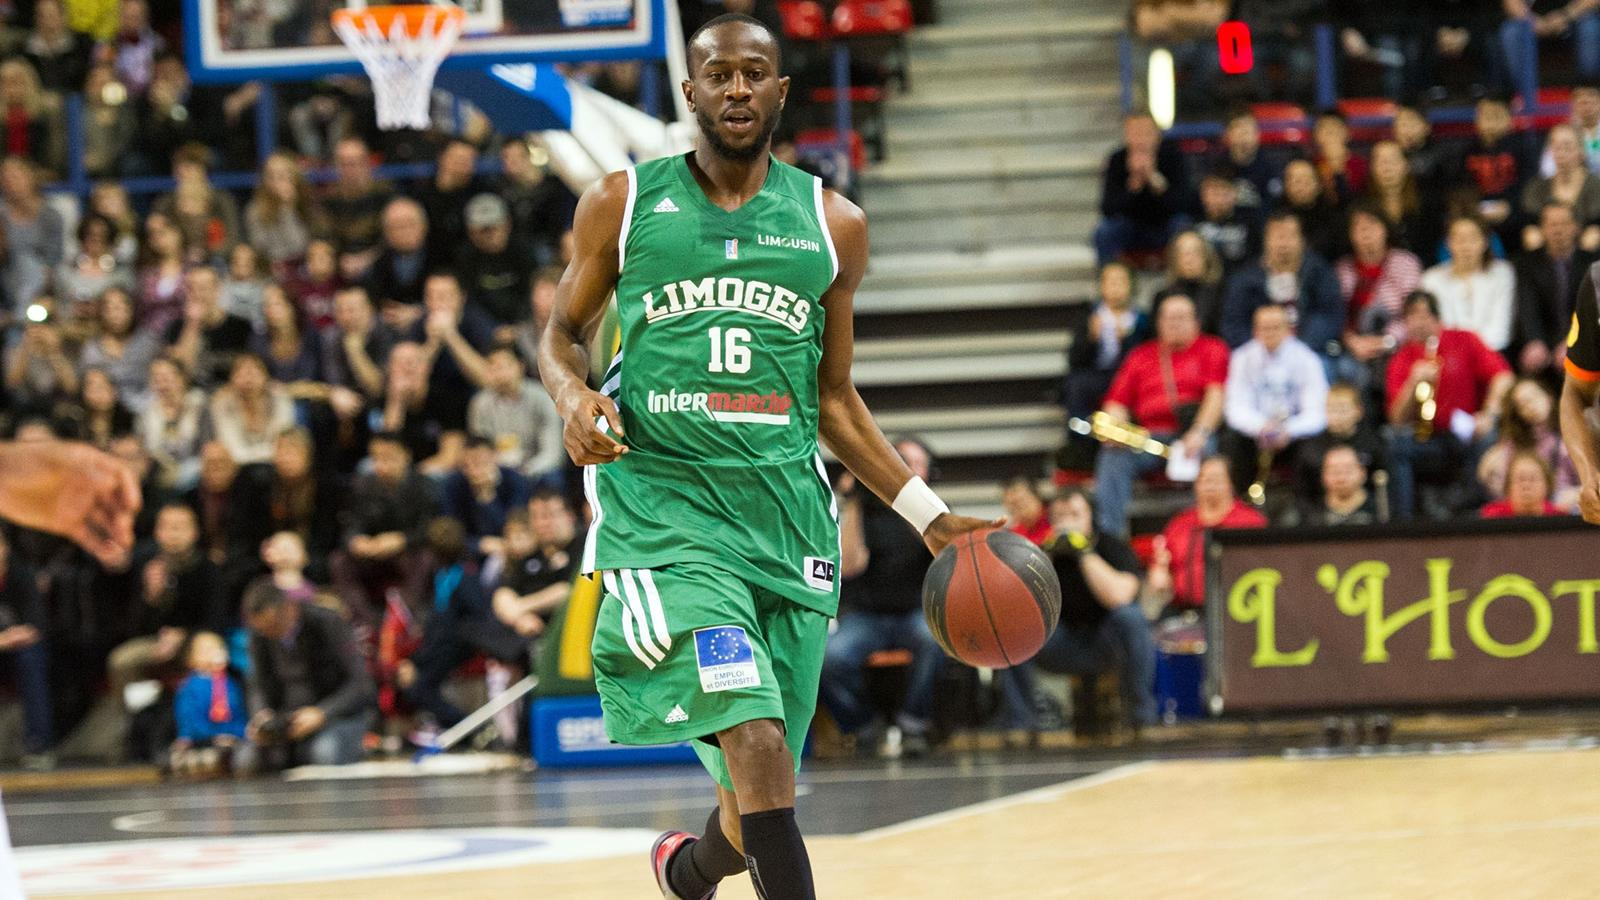 Basket Le Havre vs Limoges CSP en direct streaming live